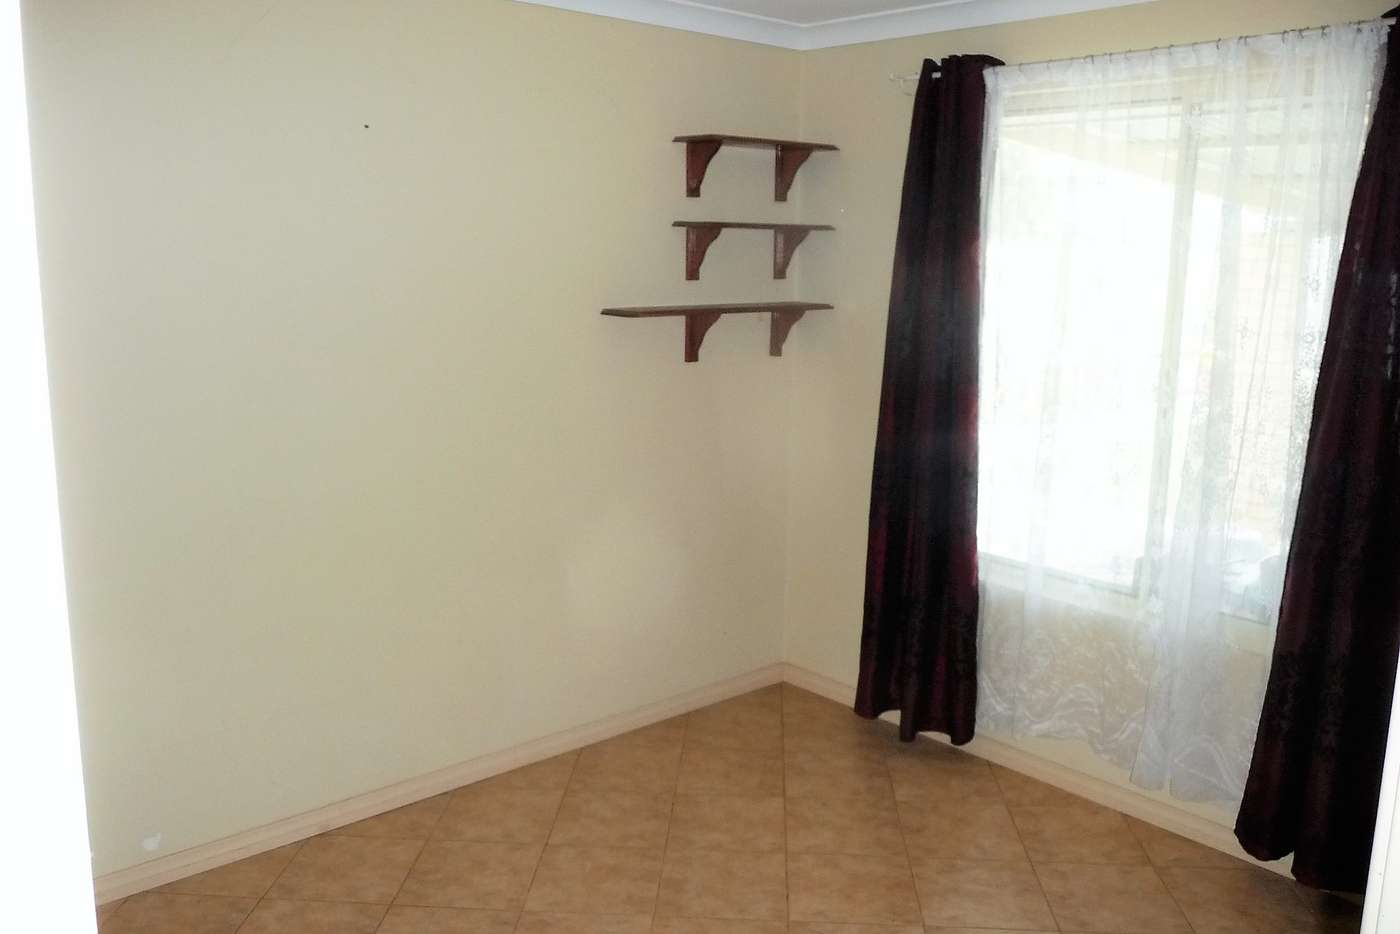 Seventh view of Homely house listing, 59 BARTRAM STREET, Beverley WA 6304